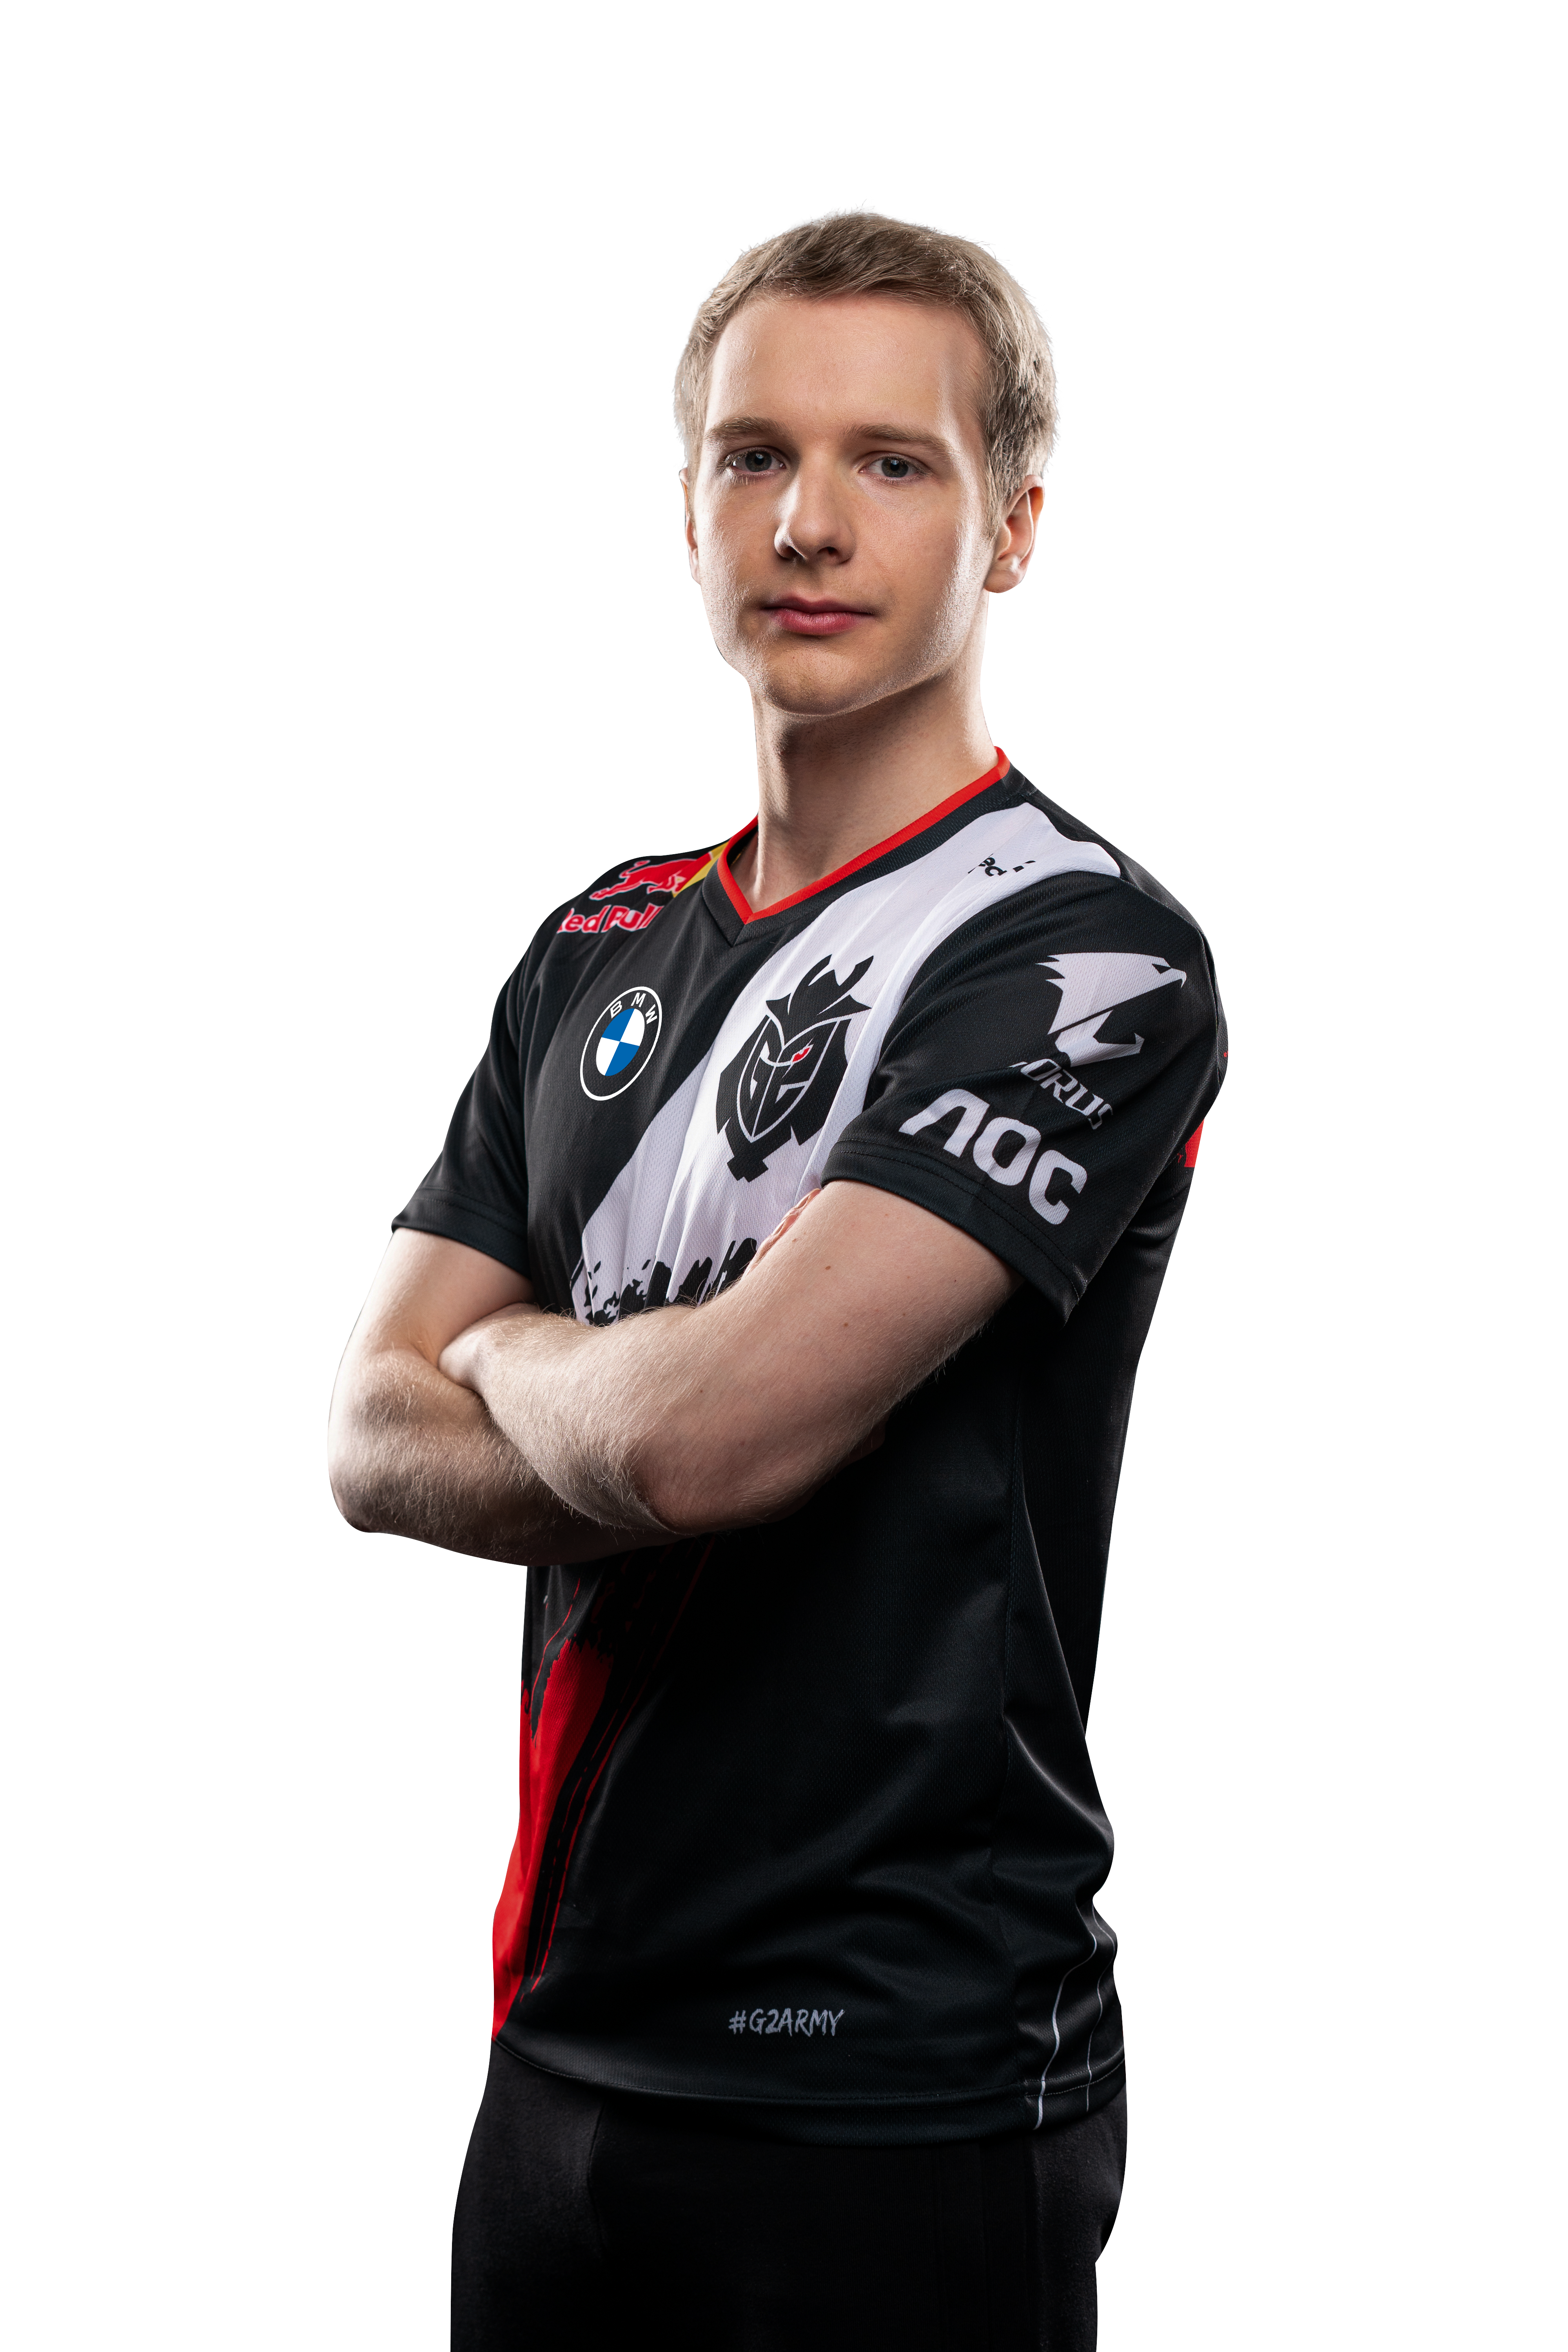 G2 Esports star Jankos poses with his arms crossed